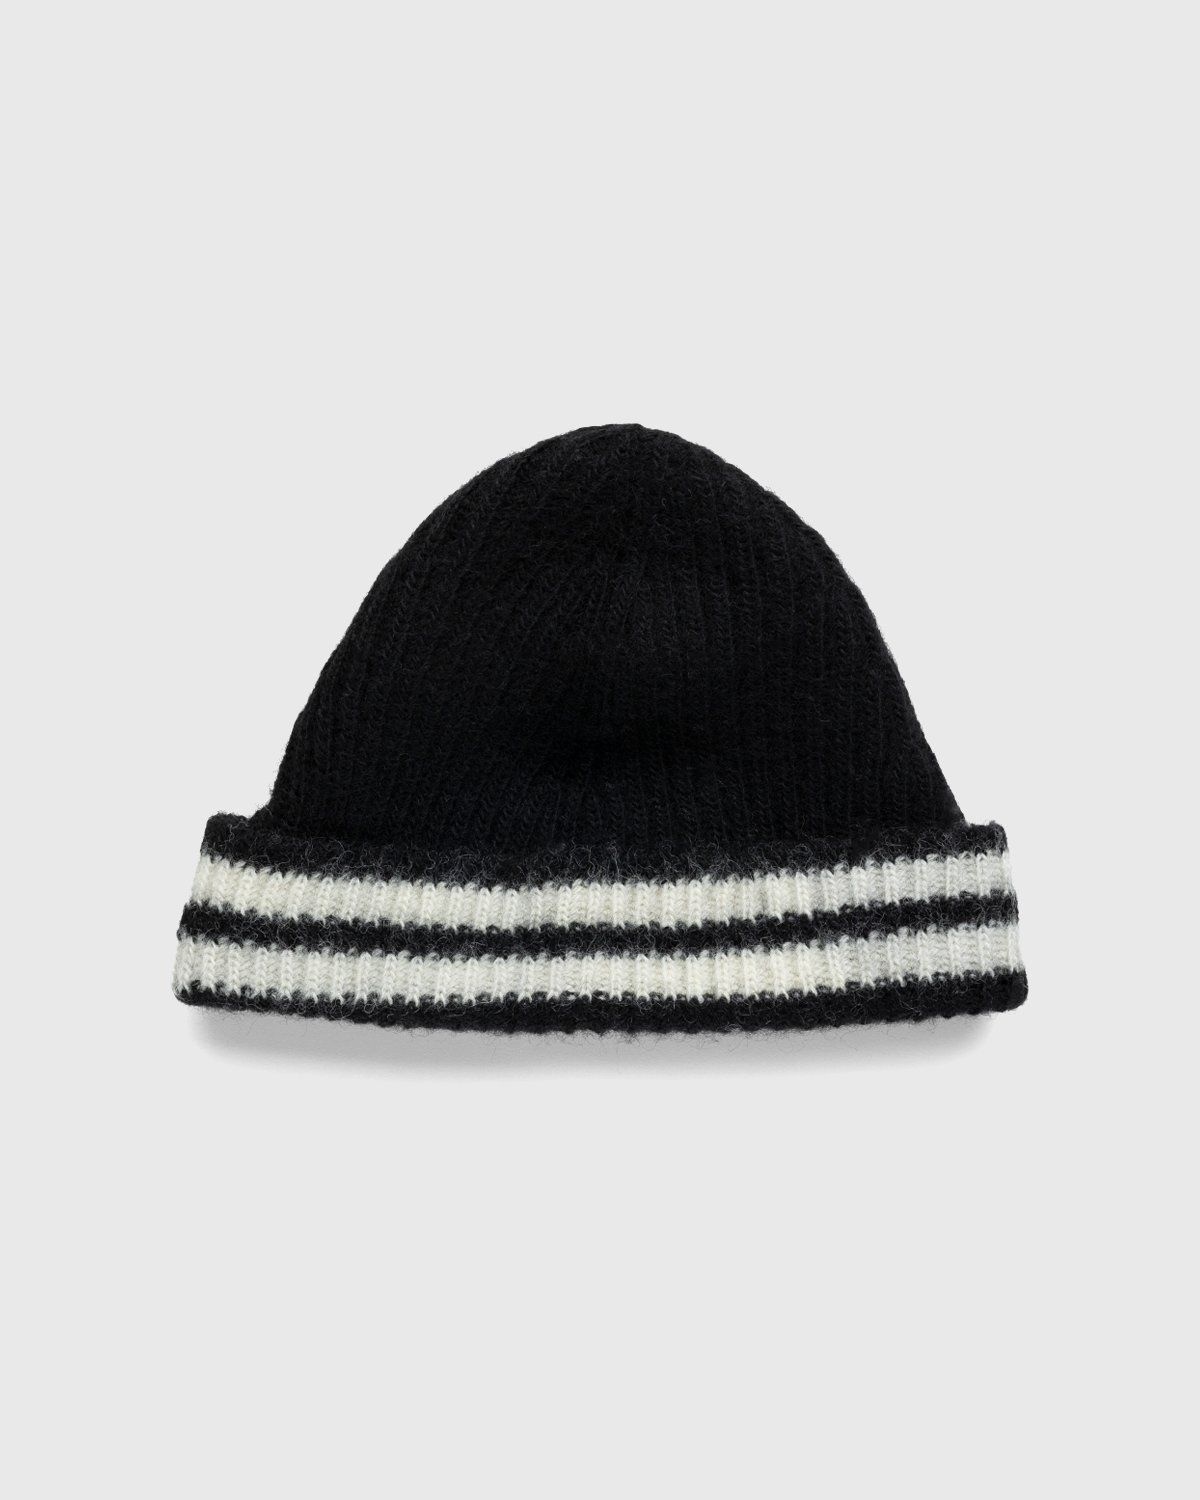 Our Legacy – Knitted Stripe Hat Black Ivory Wool - Image 1